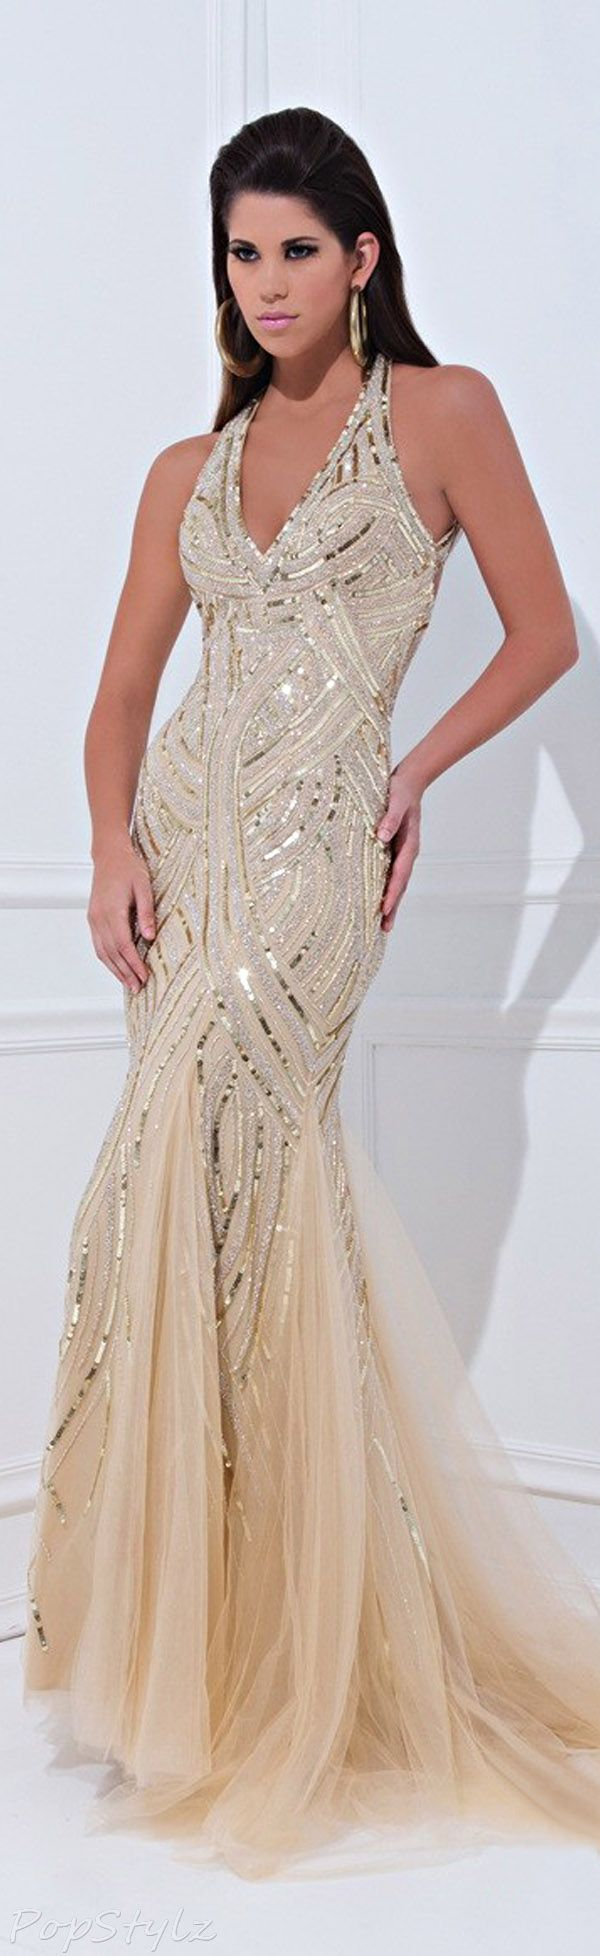 Tony Bowls Shimmering Gown : Stunning!